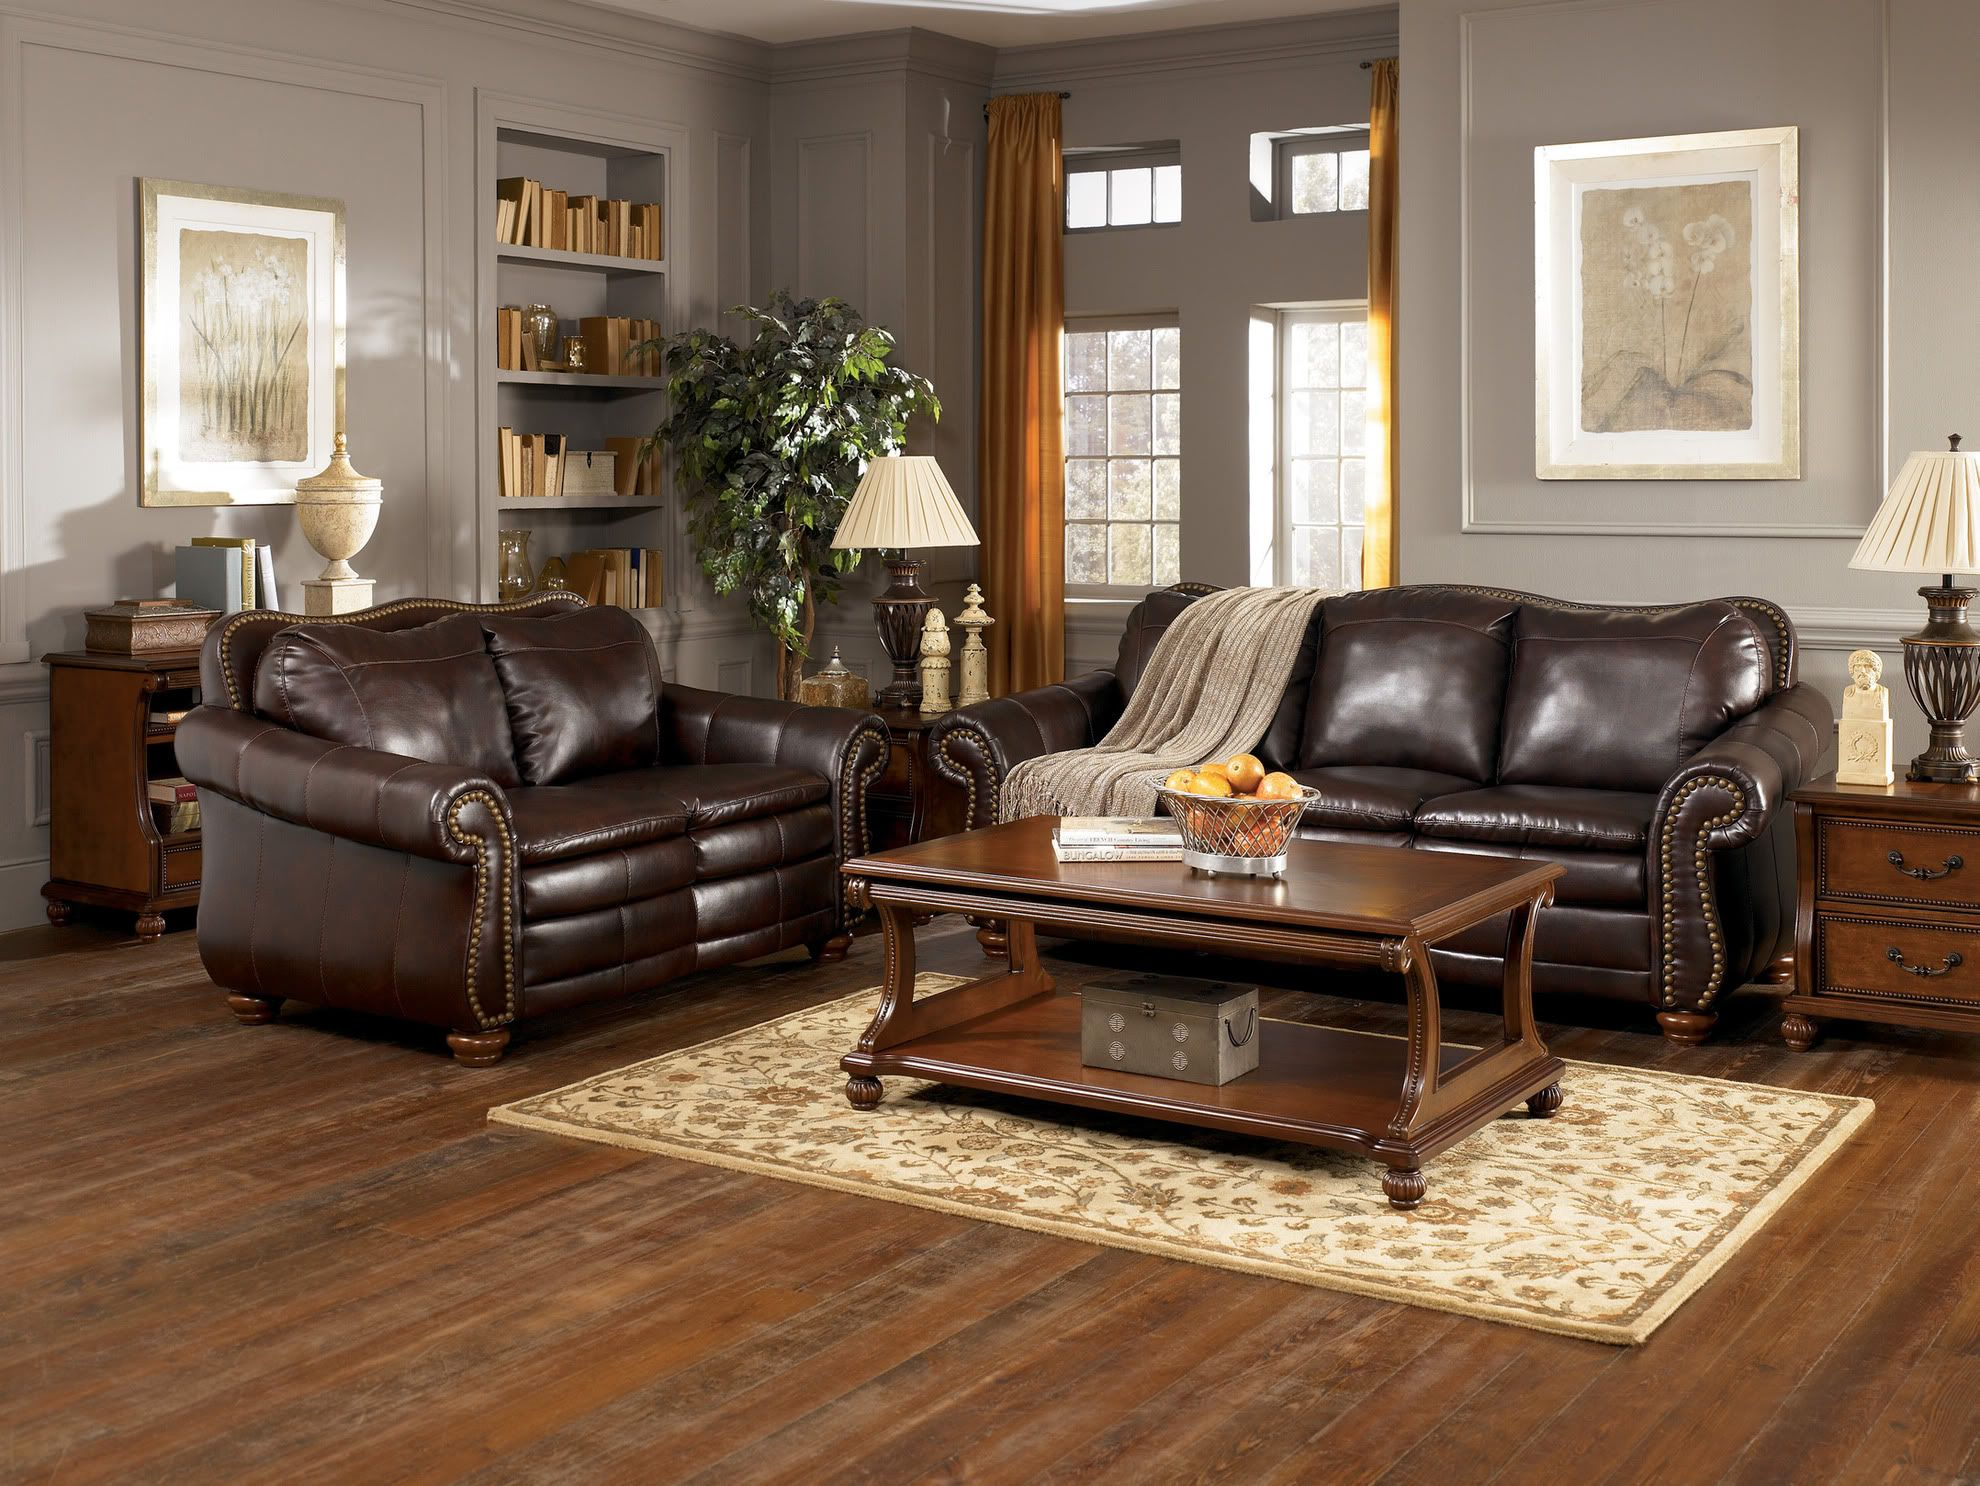 Fetching Grey Living Room With Brown Furniture Design ...